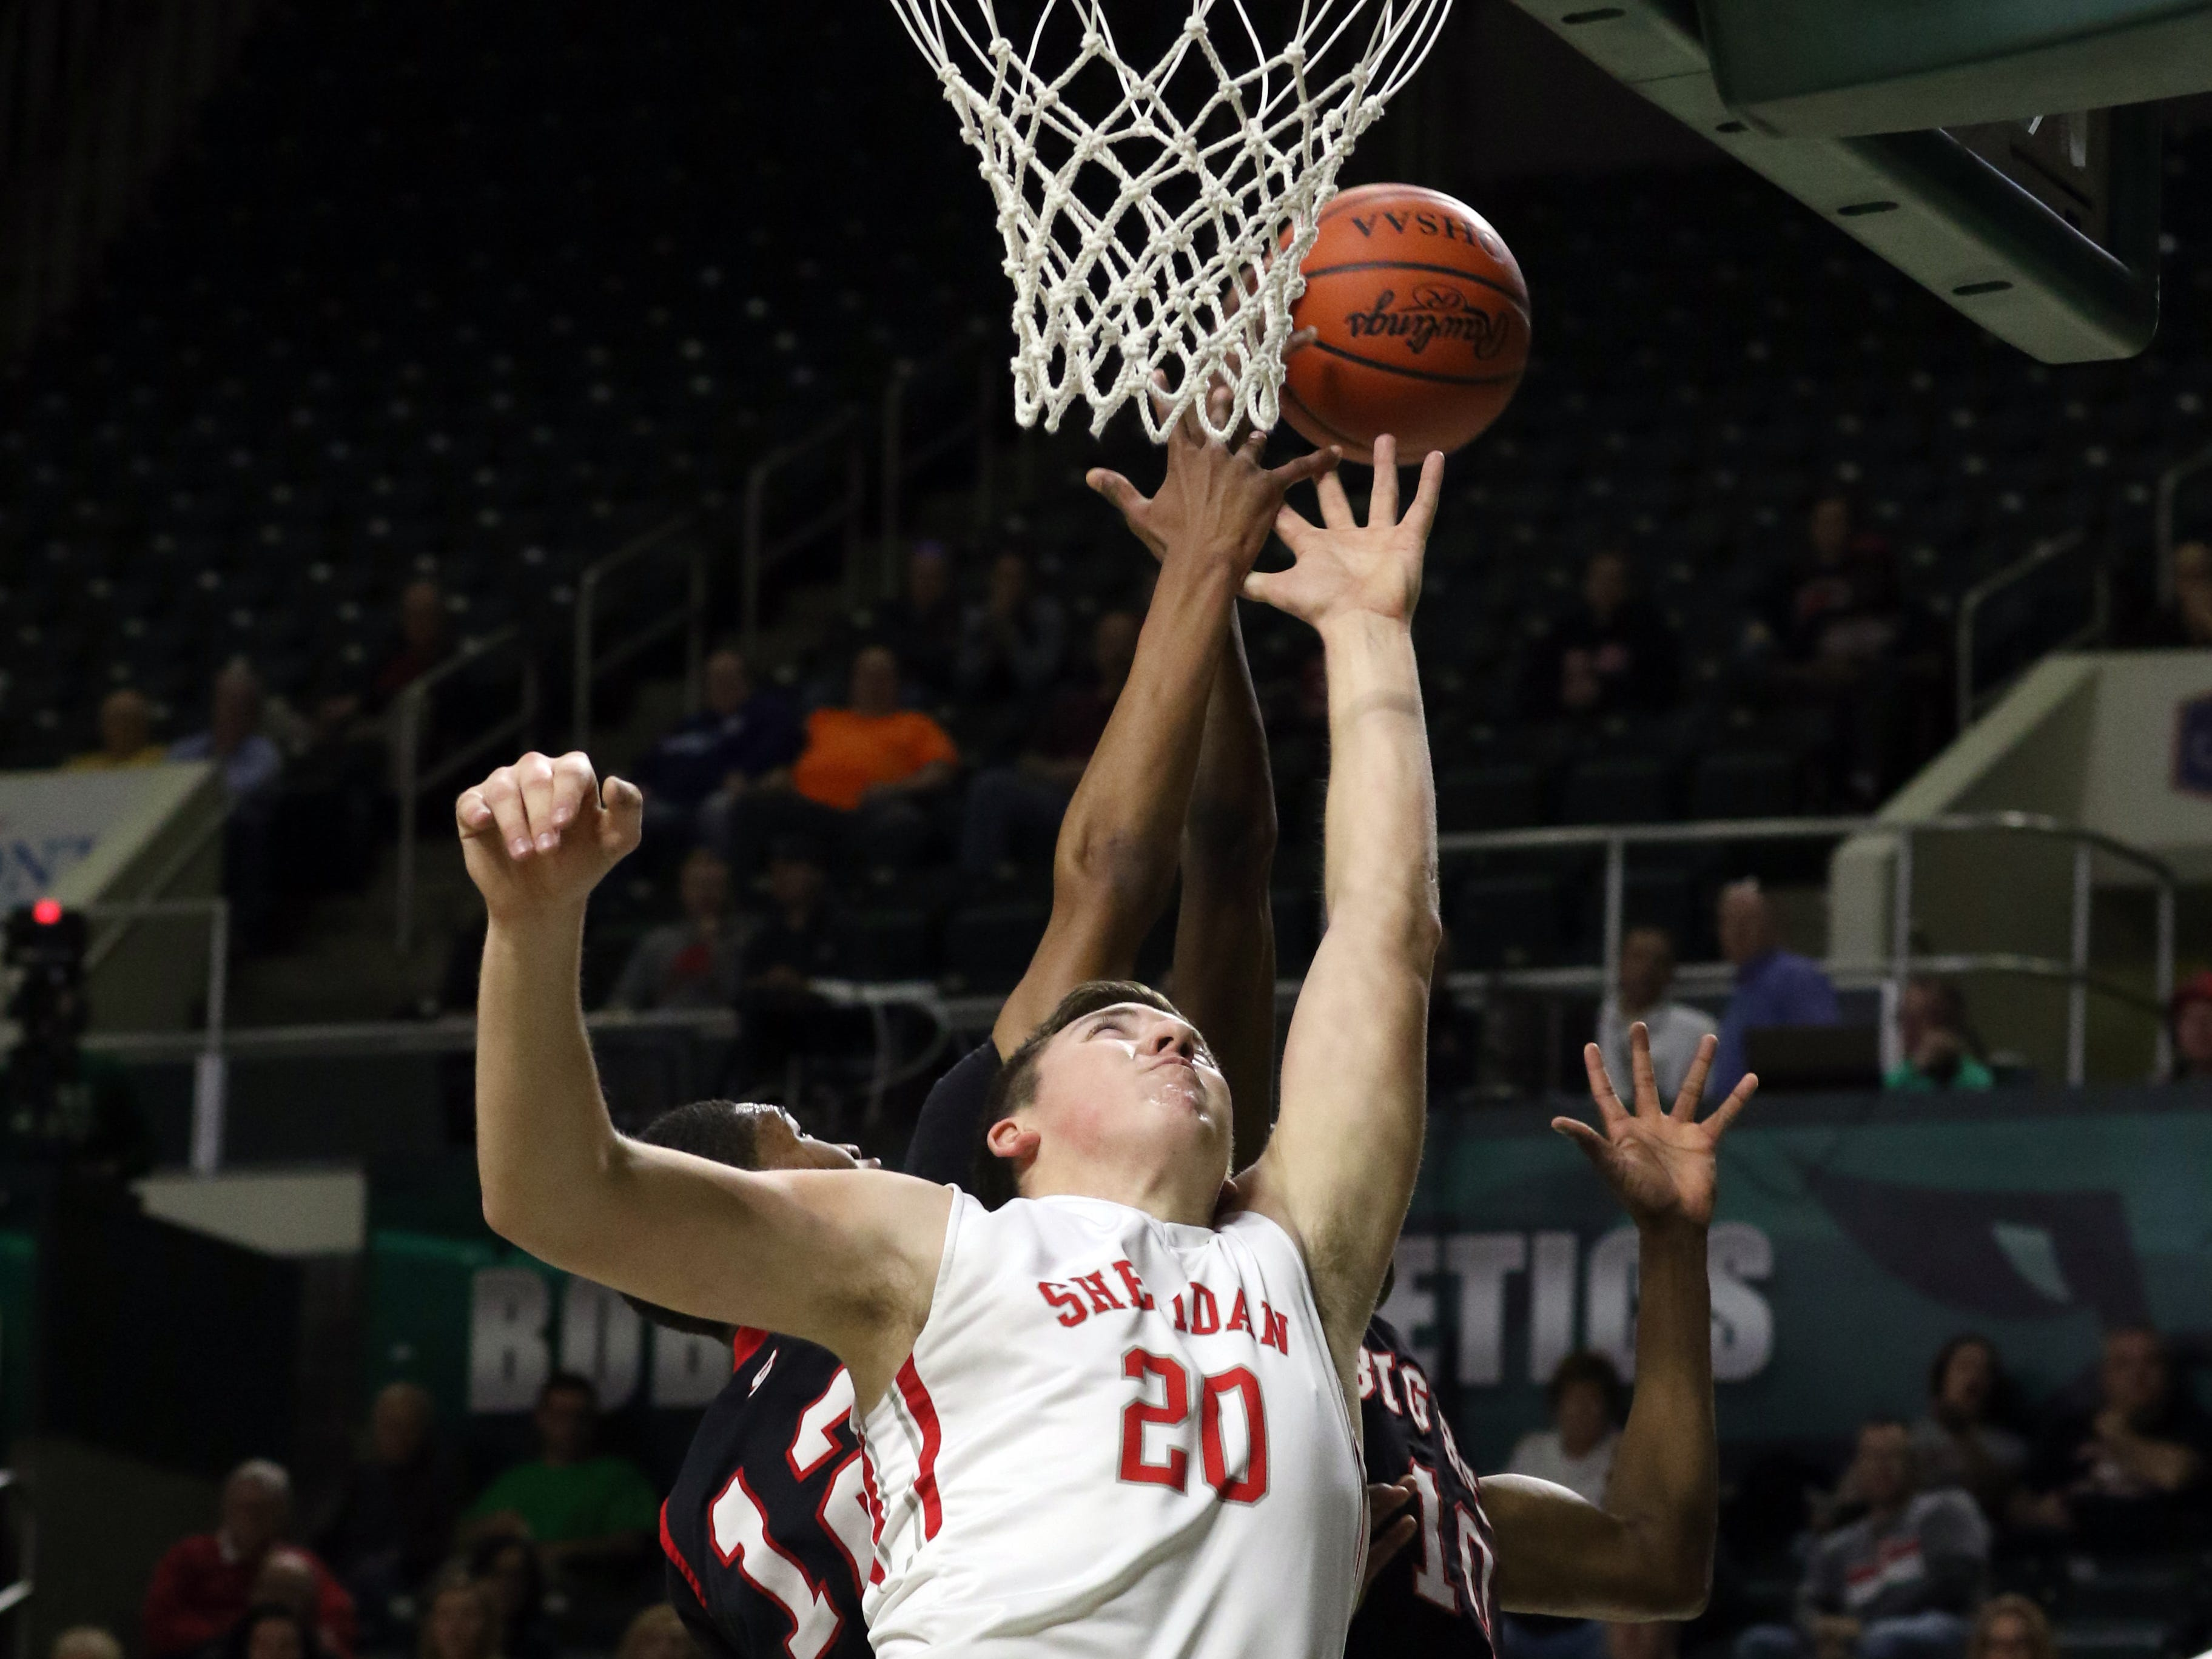 Sheridan's Adam Boyle reaches for a rebound against Steubenville in the Division II regional semifinals Wednesday in Athens.